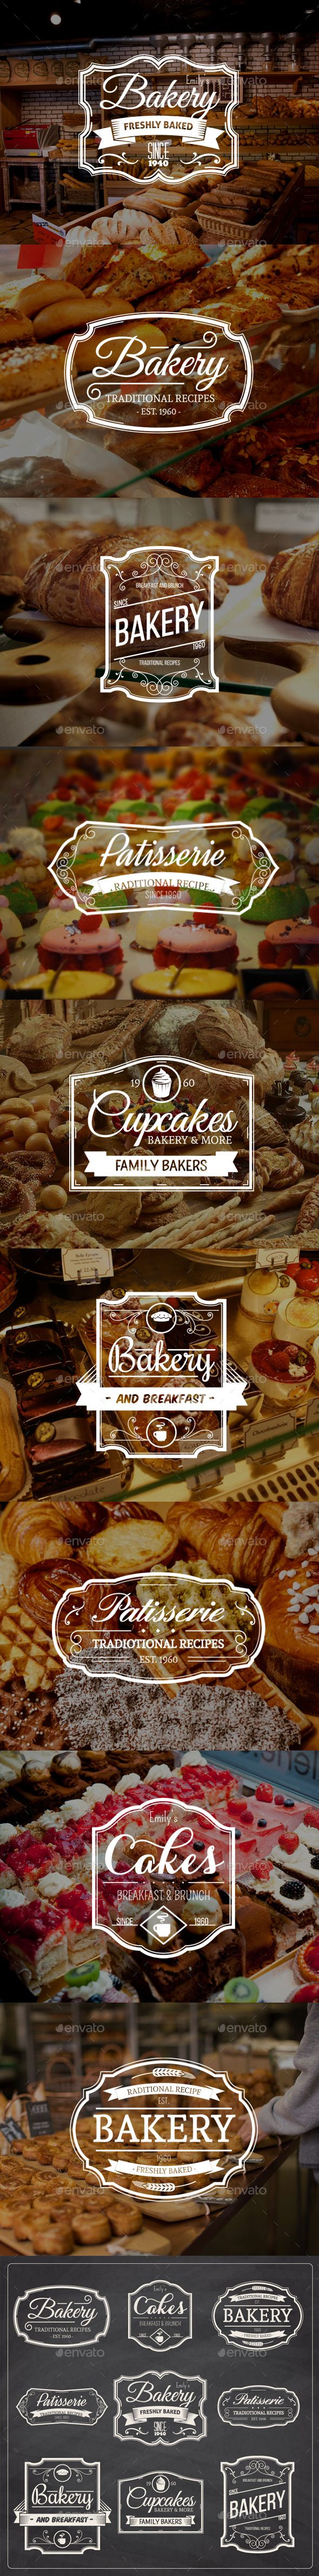 9 Vintage Bakery Badges Template Vector EPS, AI. Download here: http://graphicriver.net/item/9-vintage-bakery-badges/15810081?ref=ksioks